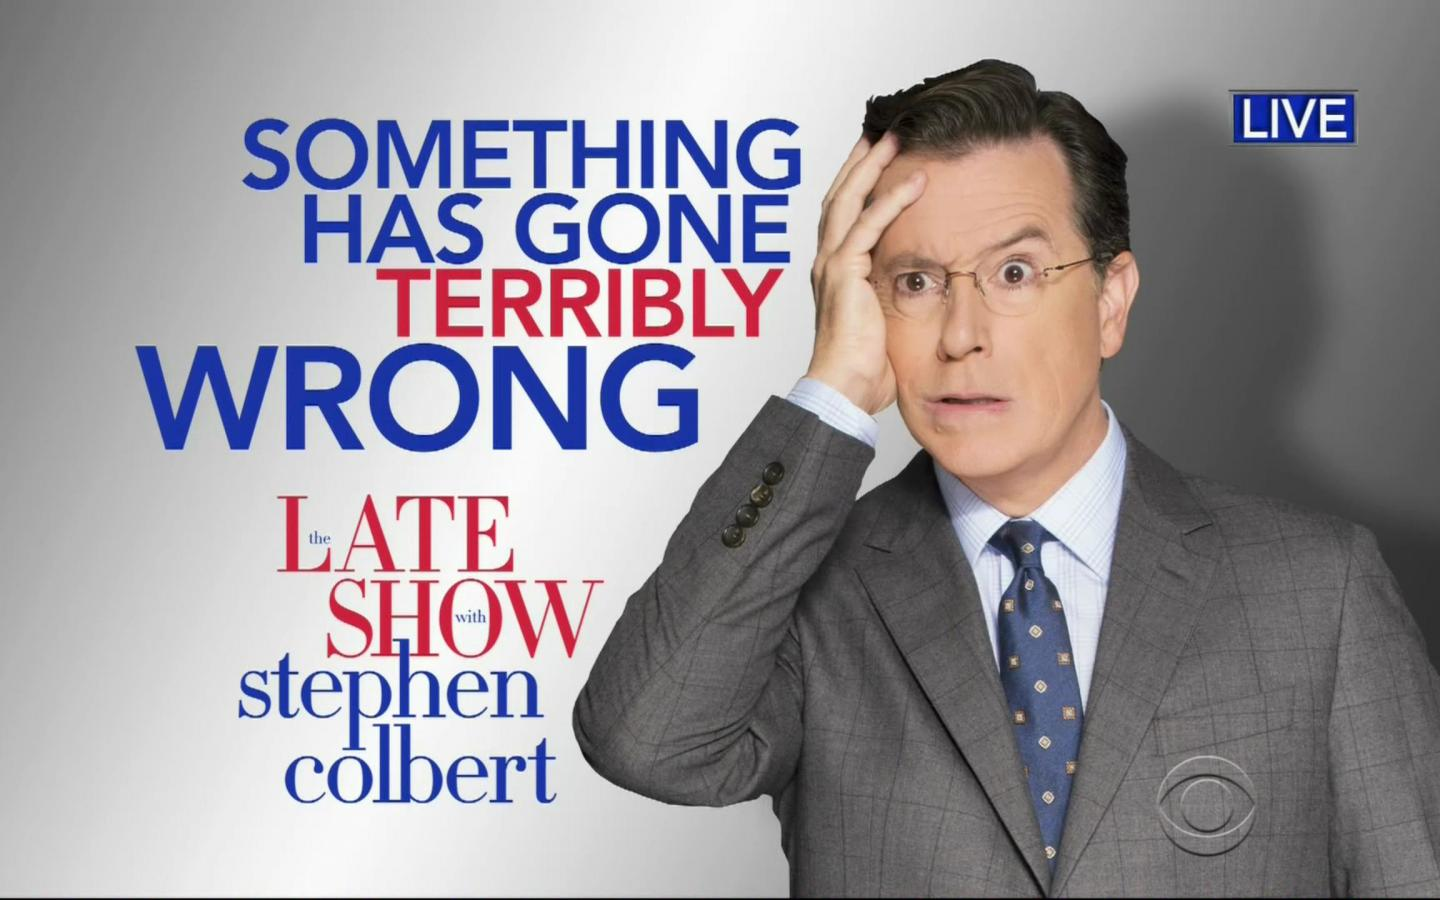 Stephen Colbert Wallpaper 2   2560 X 1440 stmednet 1440x900